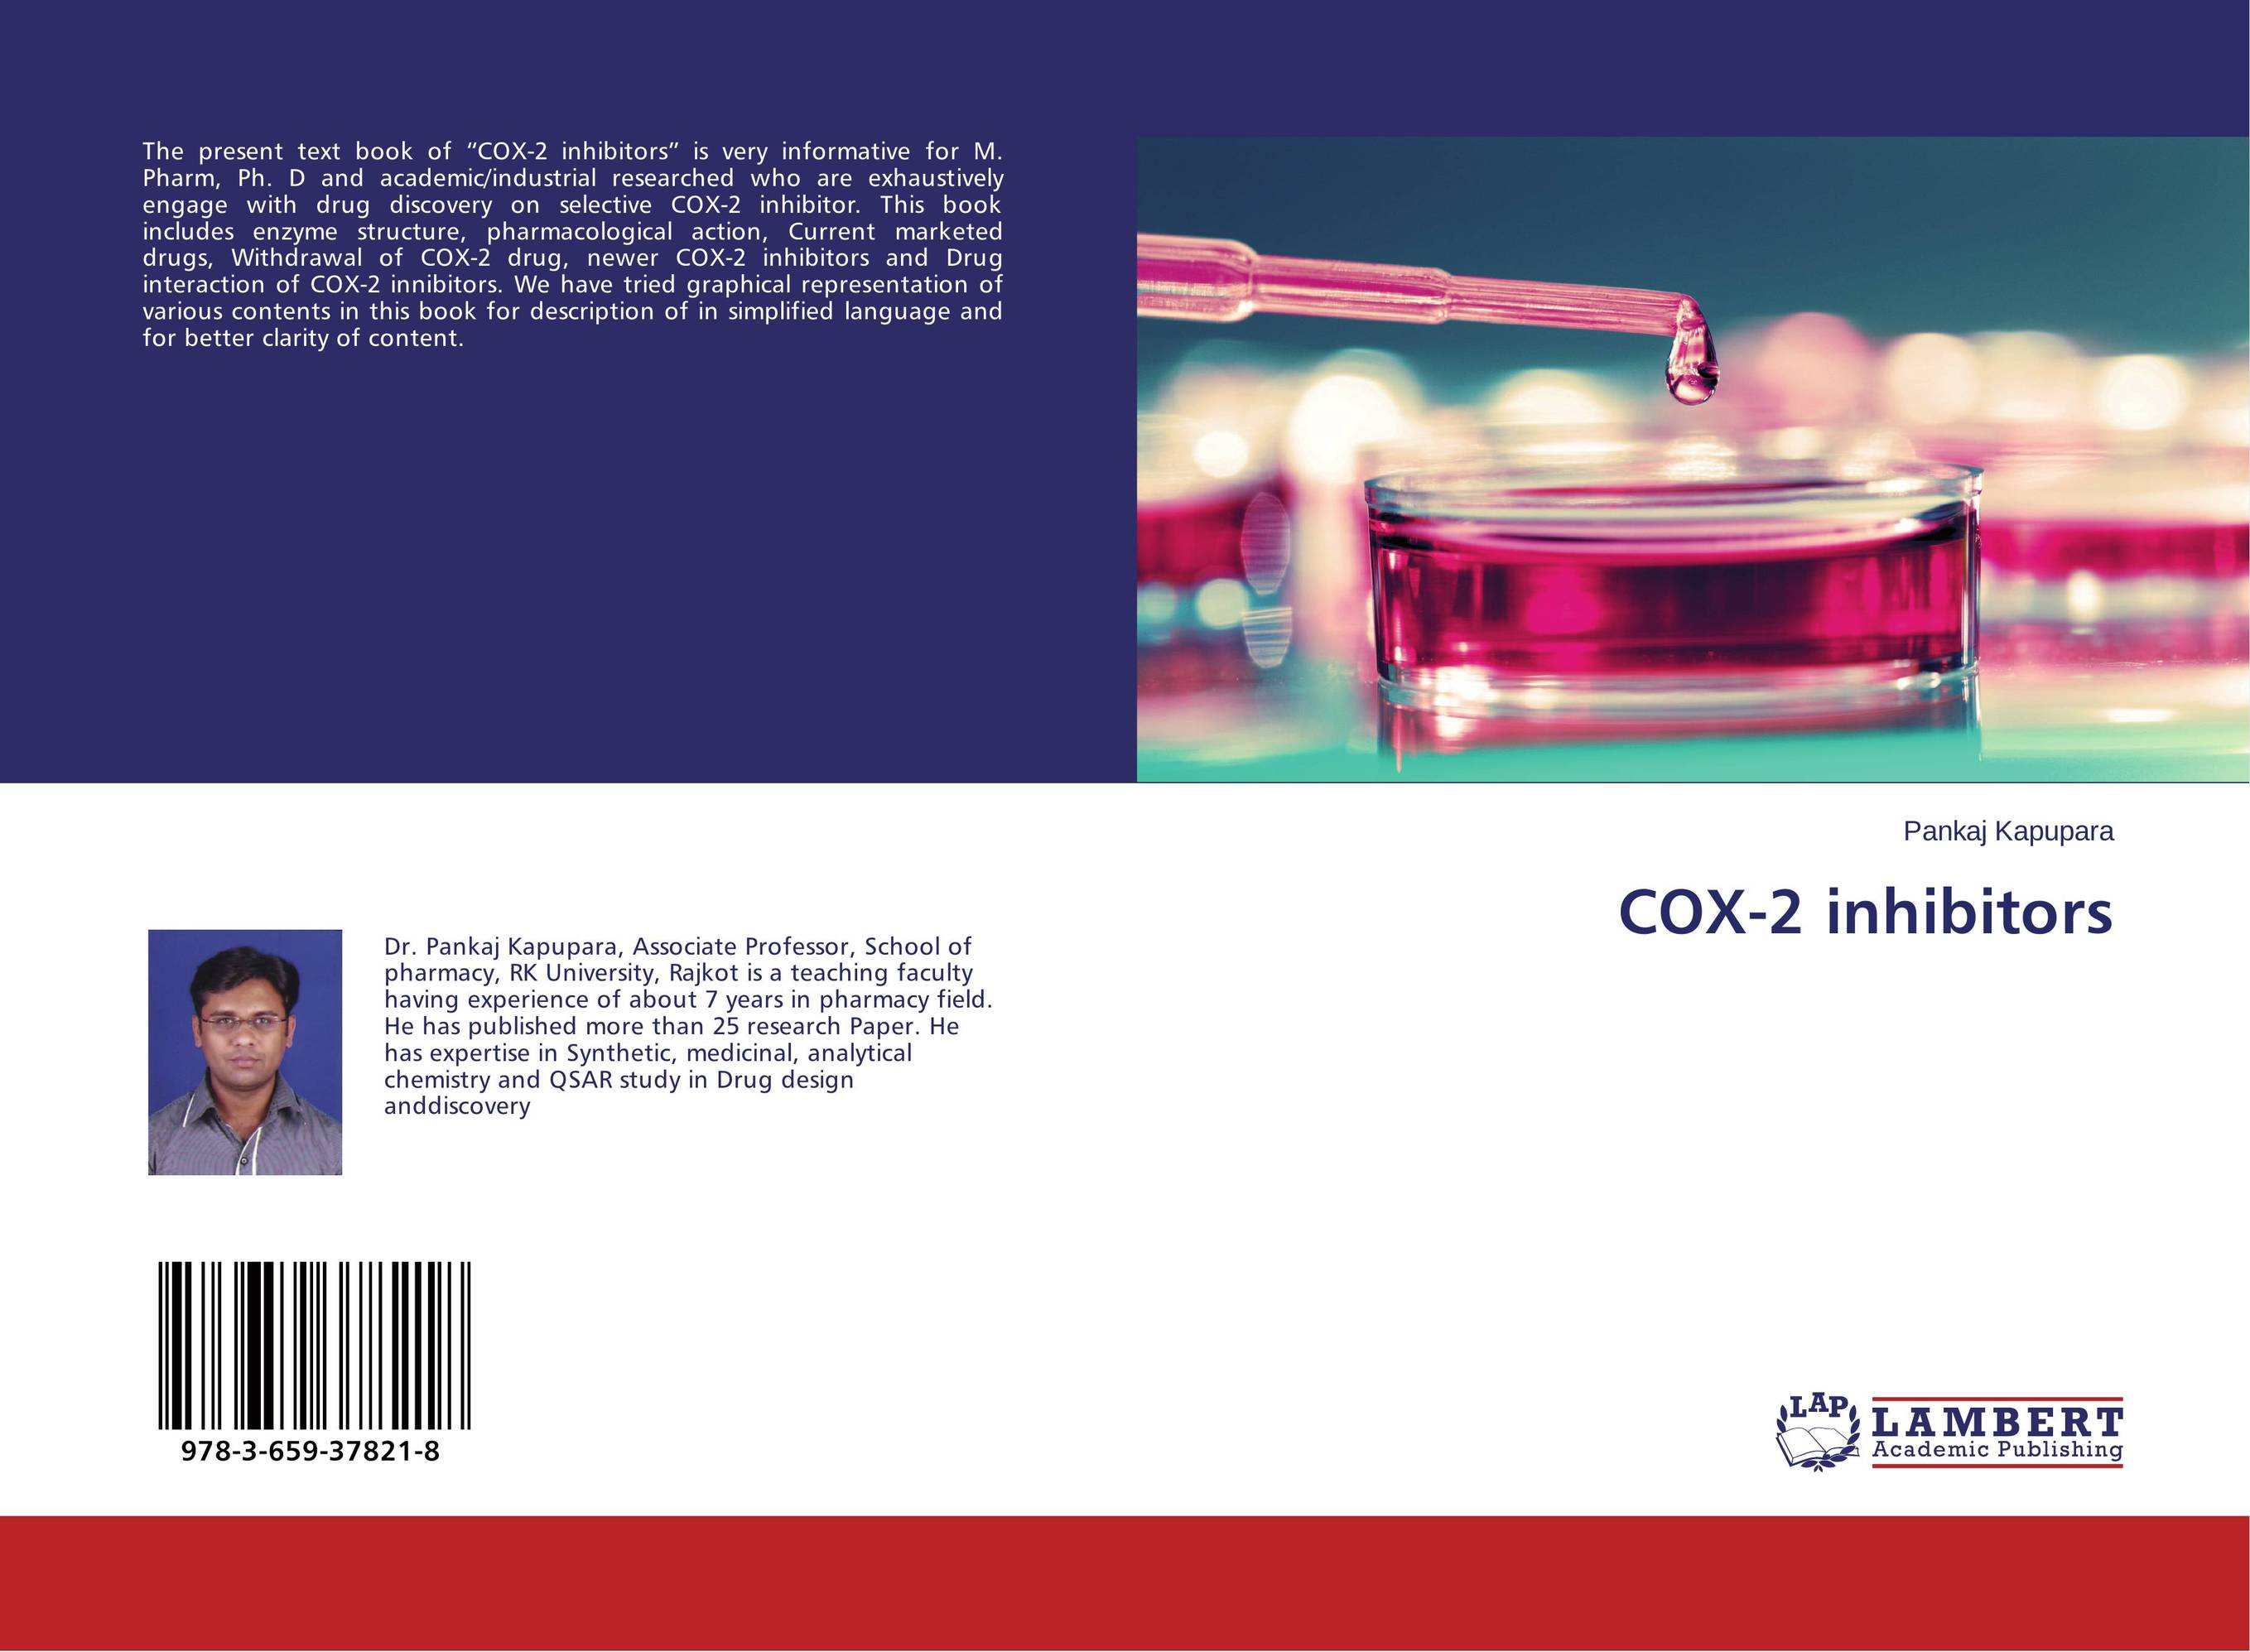 COX-2 inhibitors drug discovery and design